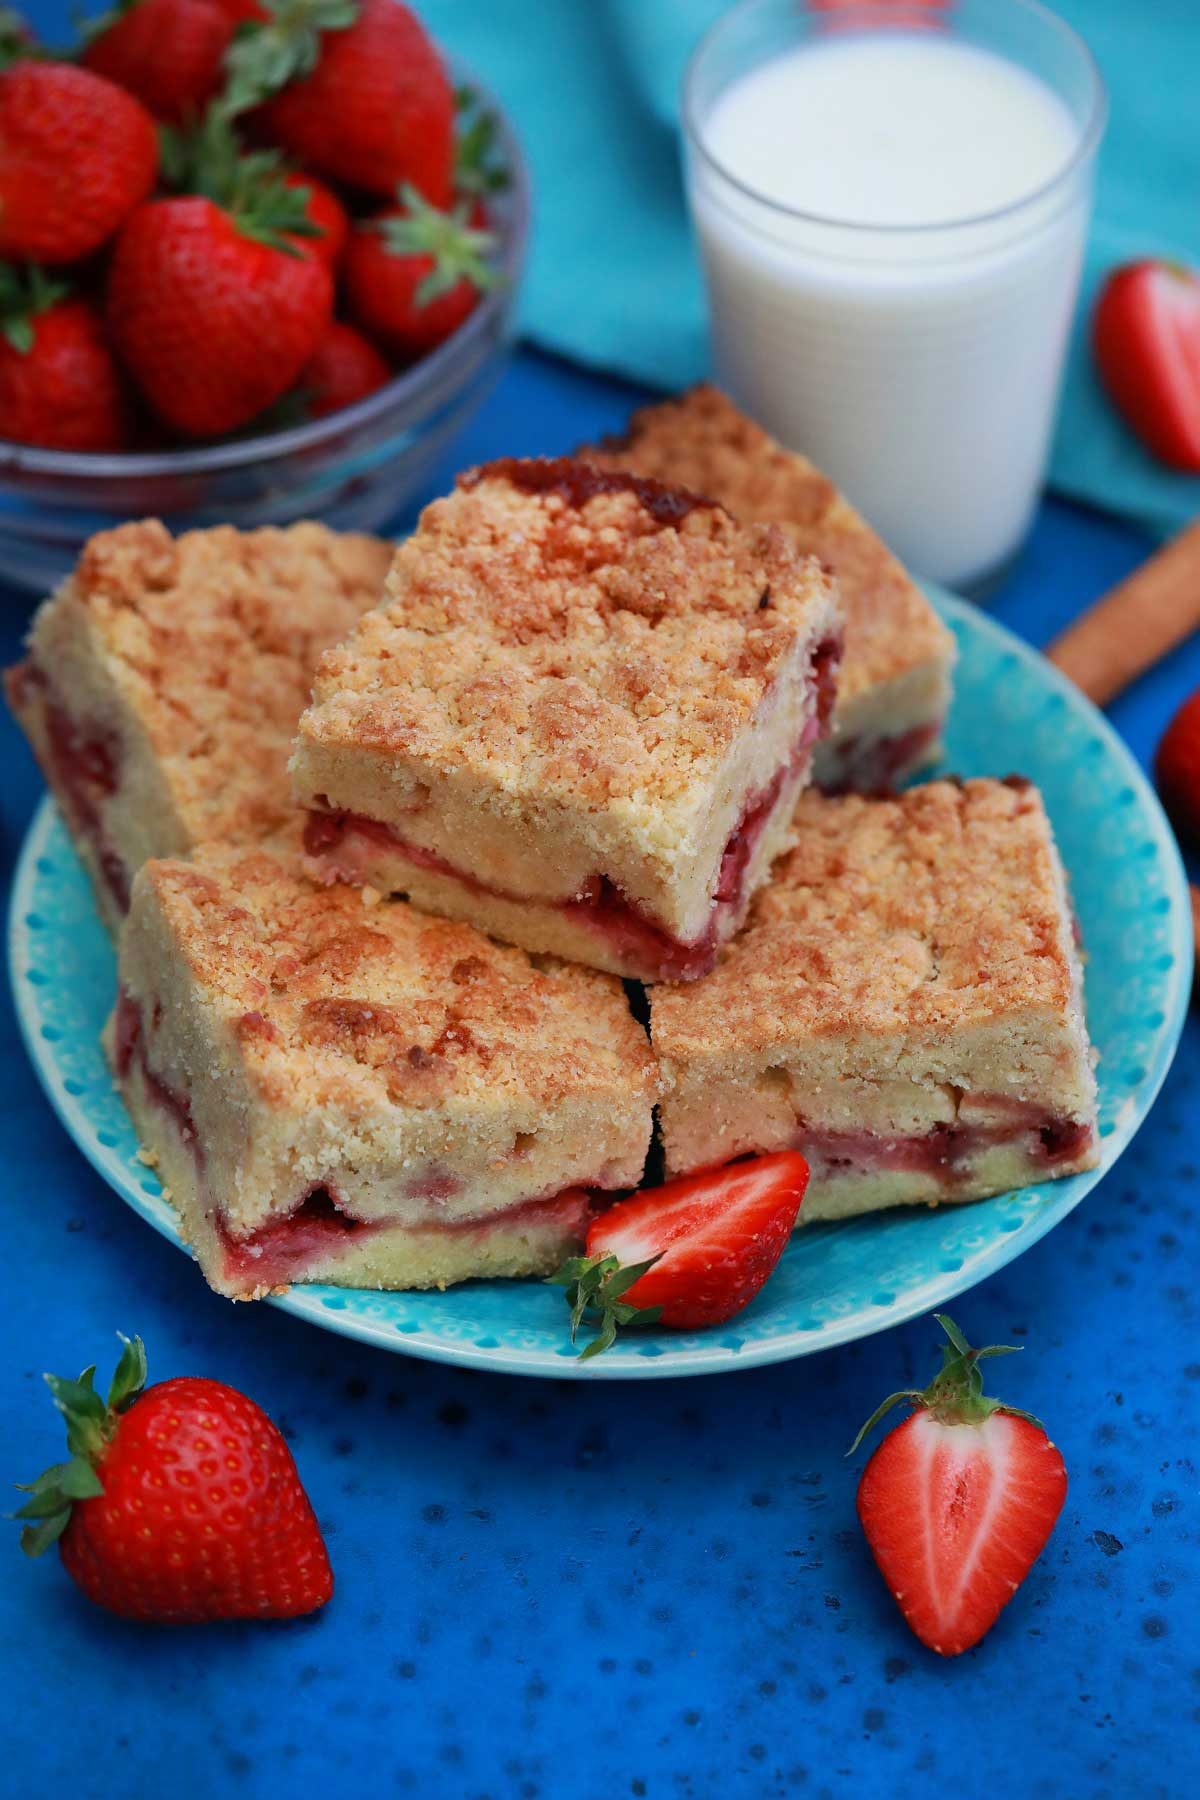 Strawberry bars on teal plate